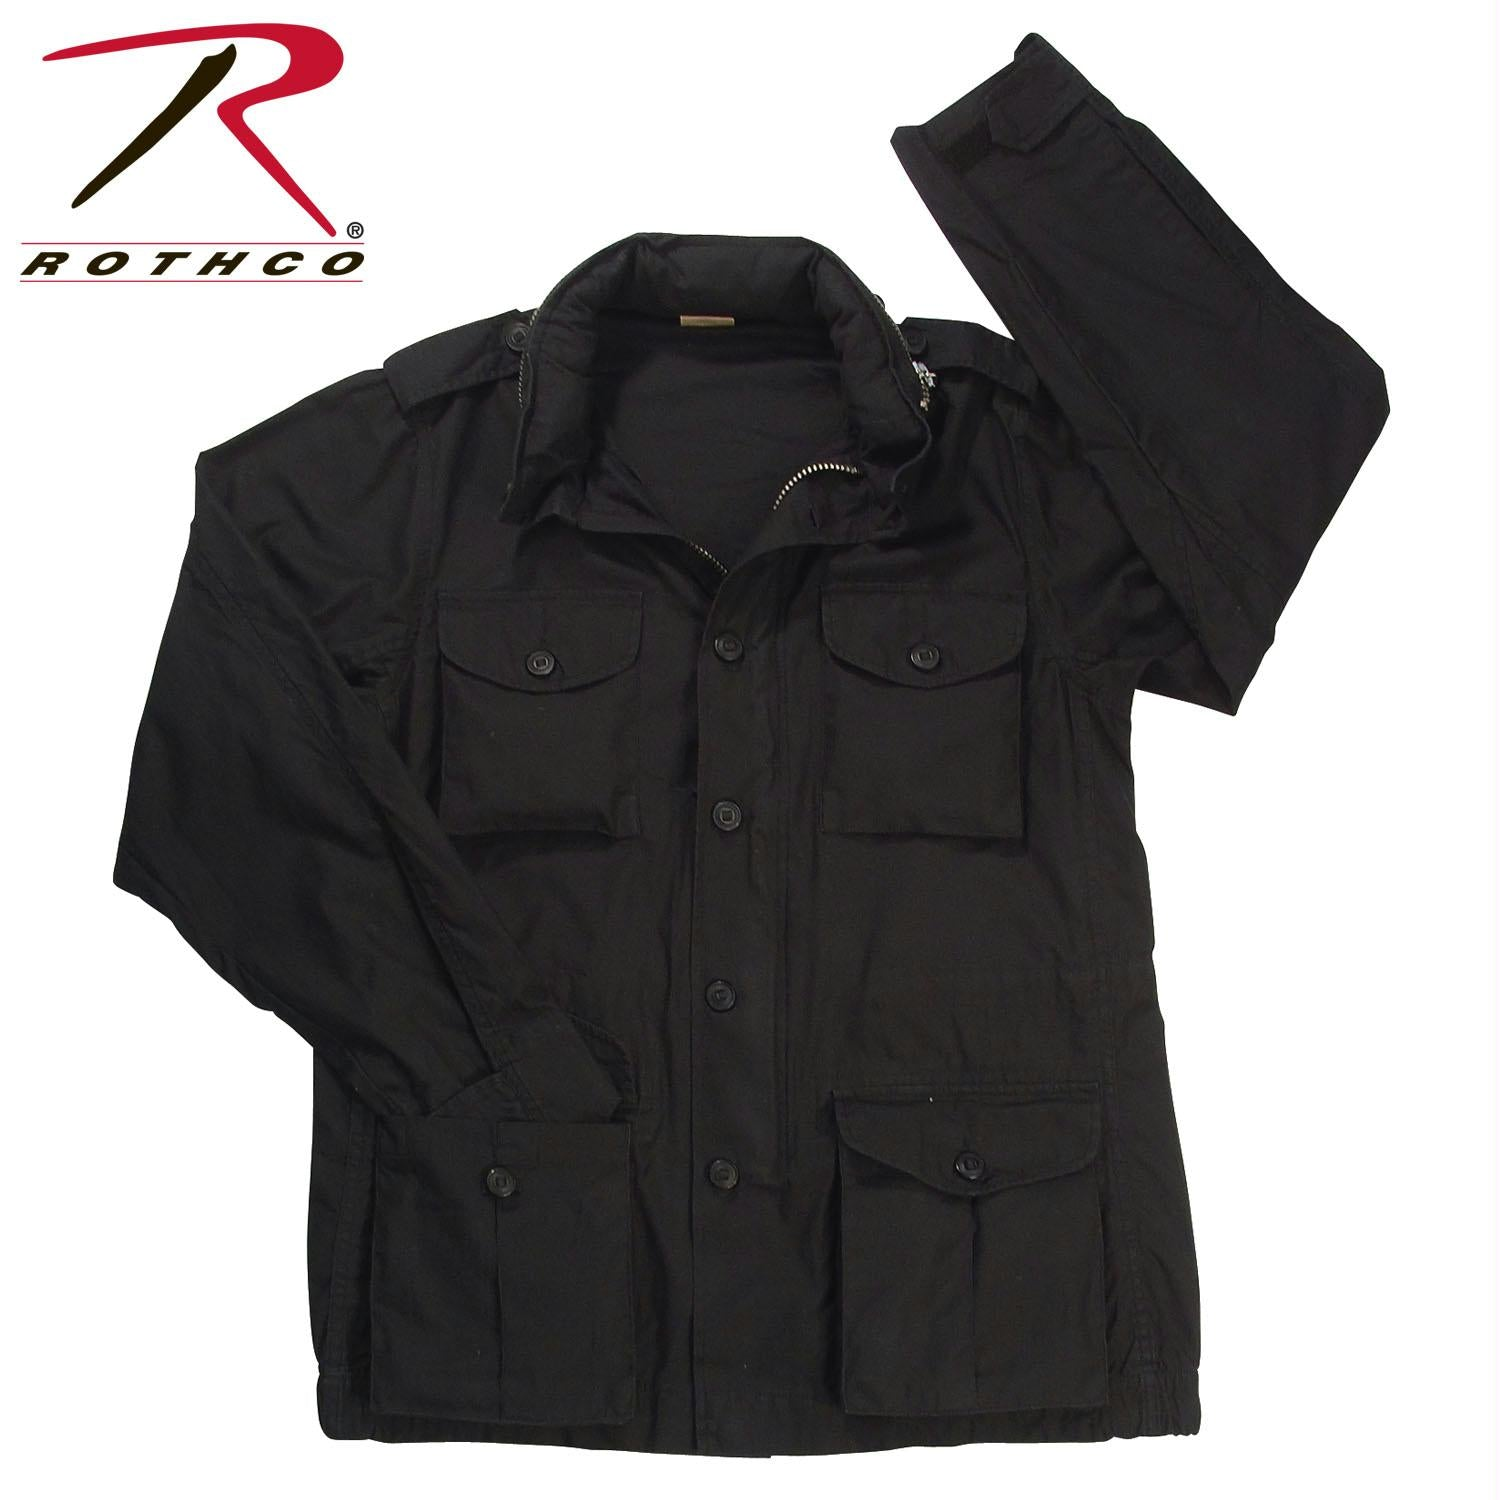 Rothco Vintage Lightweight M-65 Field Jacket - Black / XS